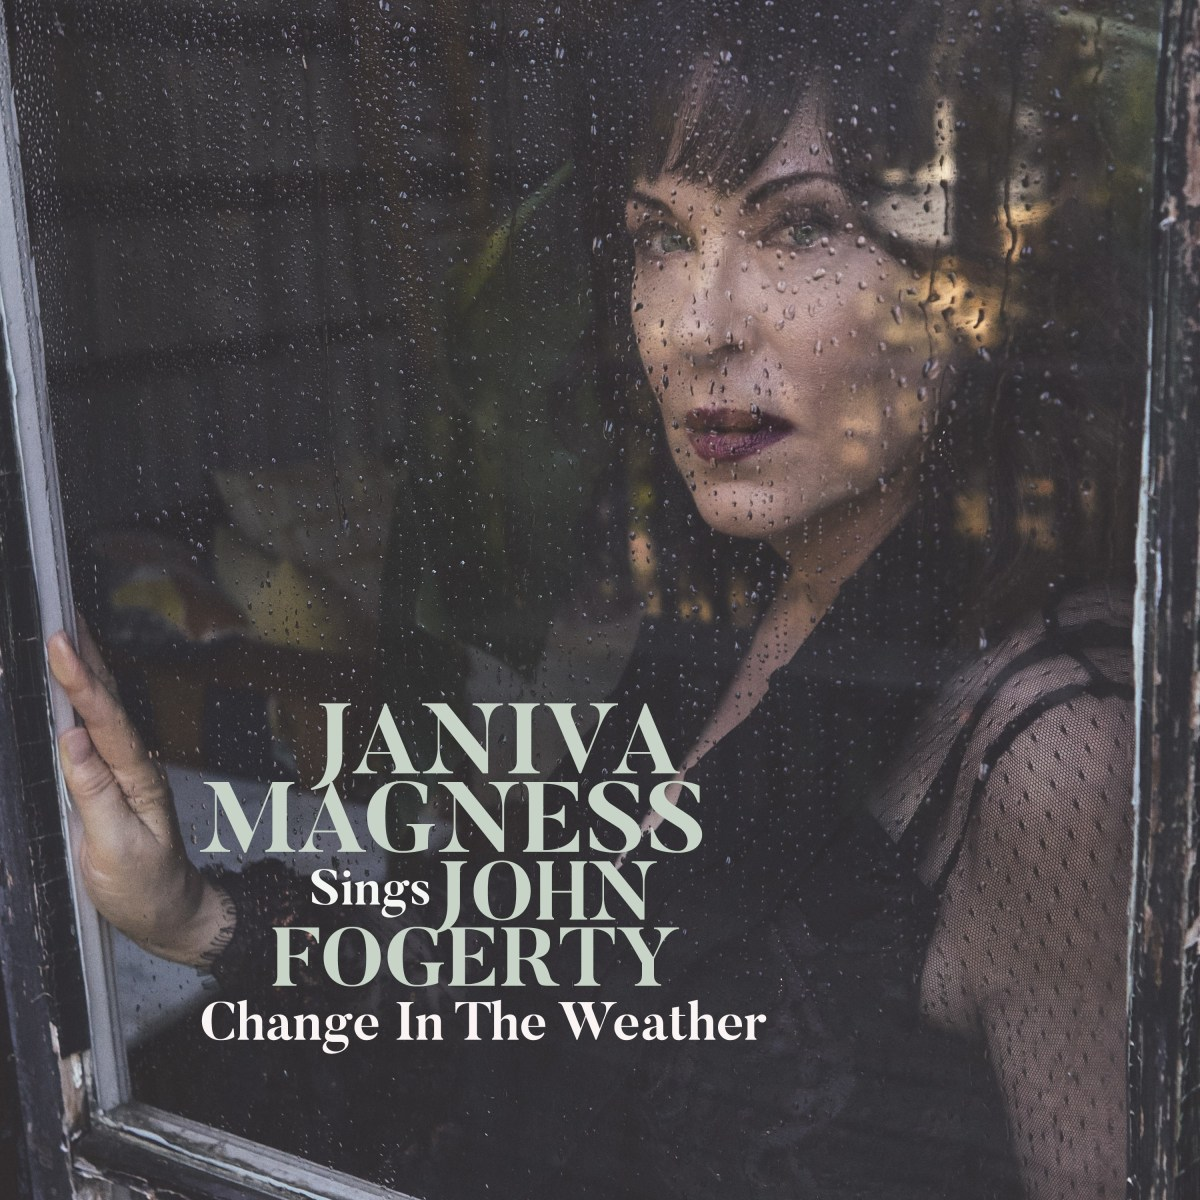 Janiva Magness – Change In The Weather – Janiva Magness Sings John Fogerty  (Blue Elan Records)